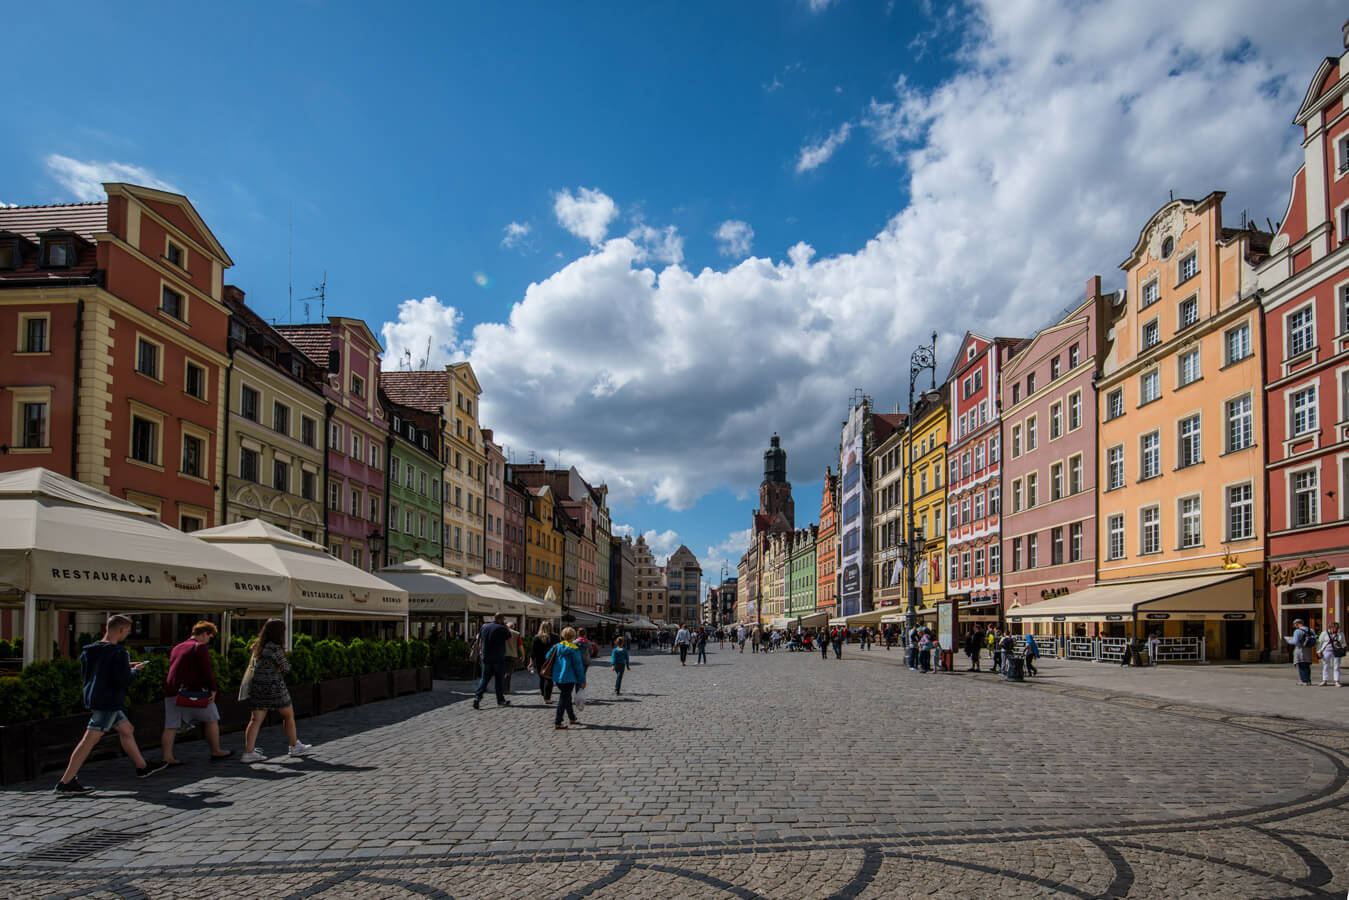 Attractions of the Wrocław Market Square